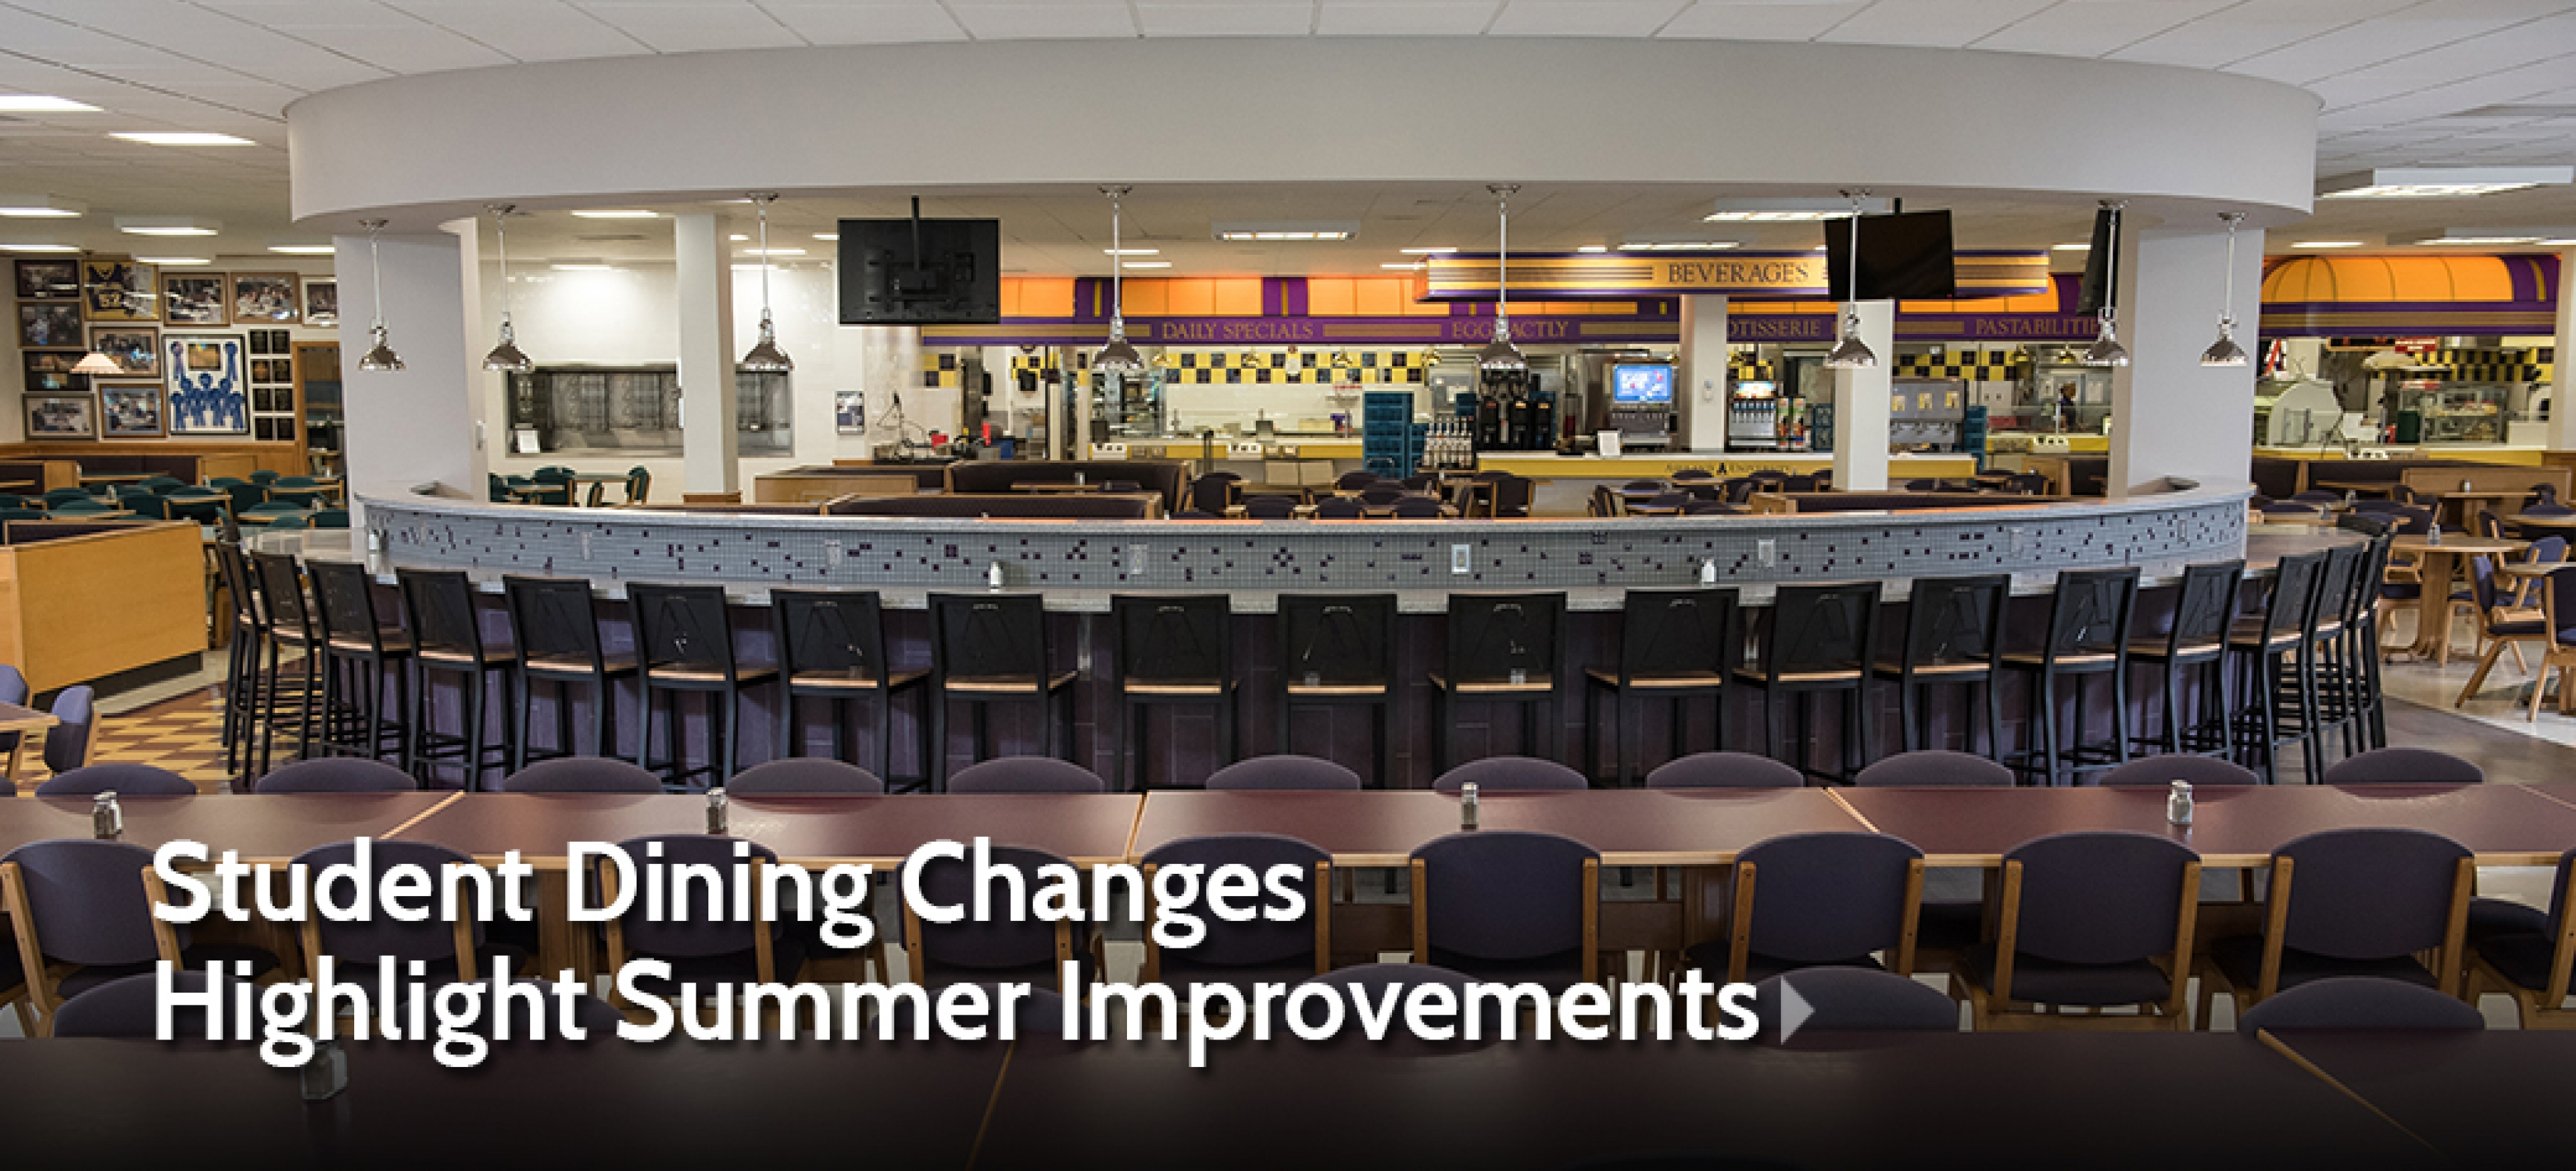 Student Dining Changes Highlight Summer Improvements